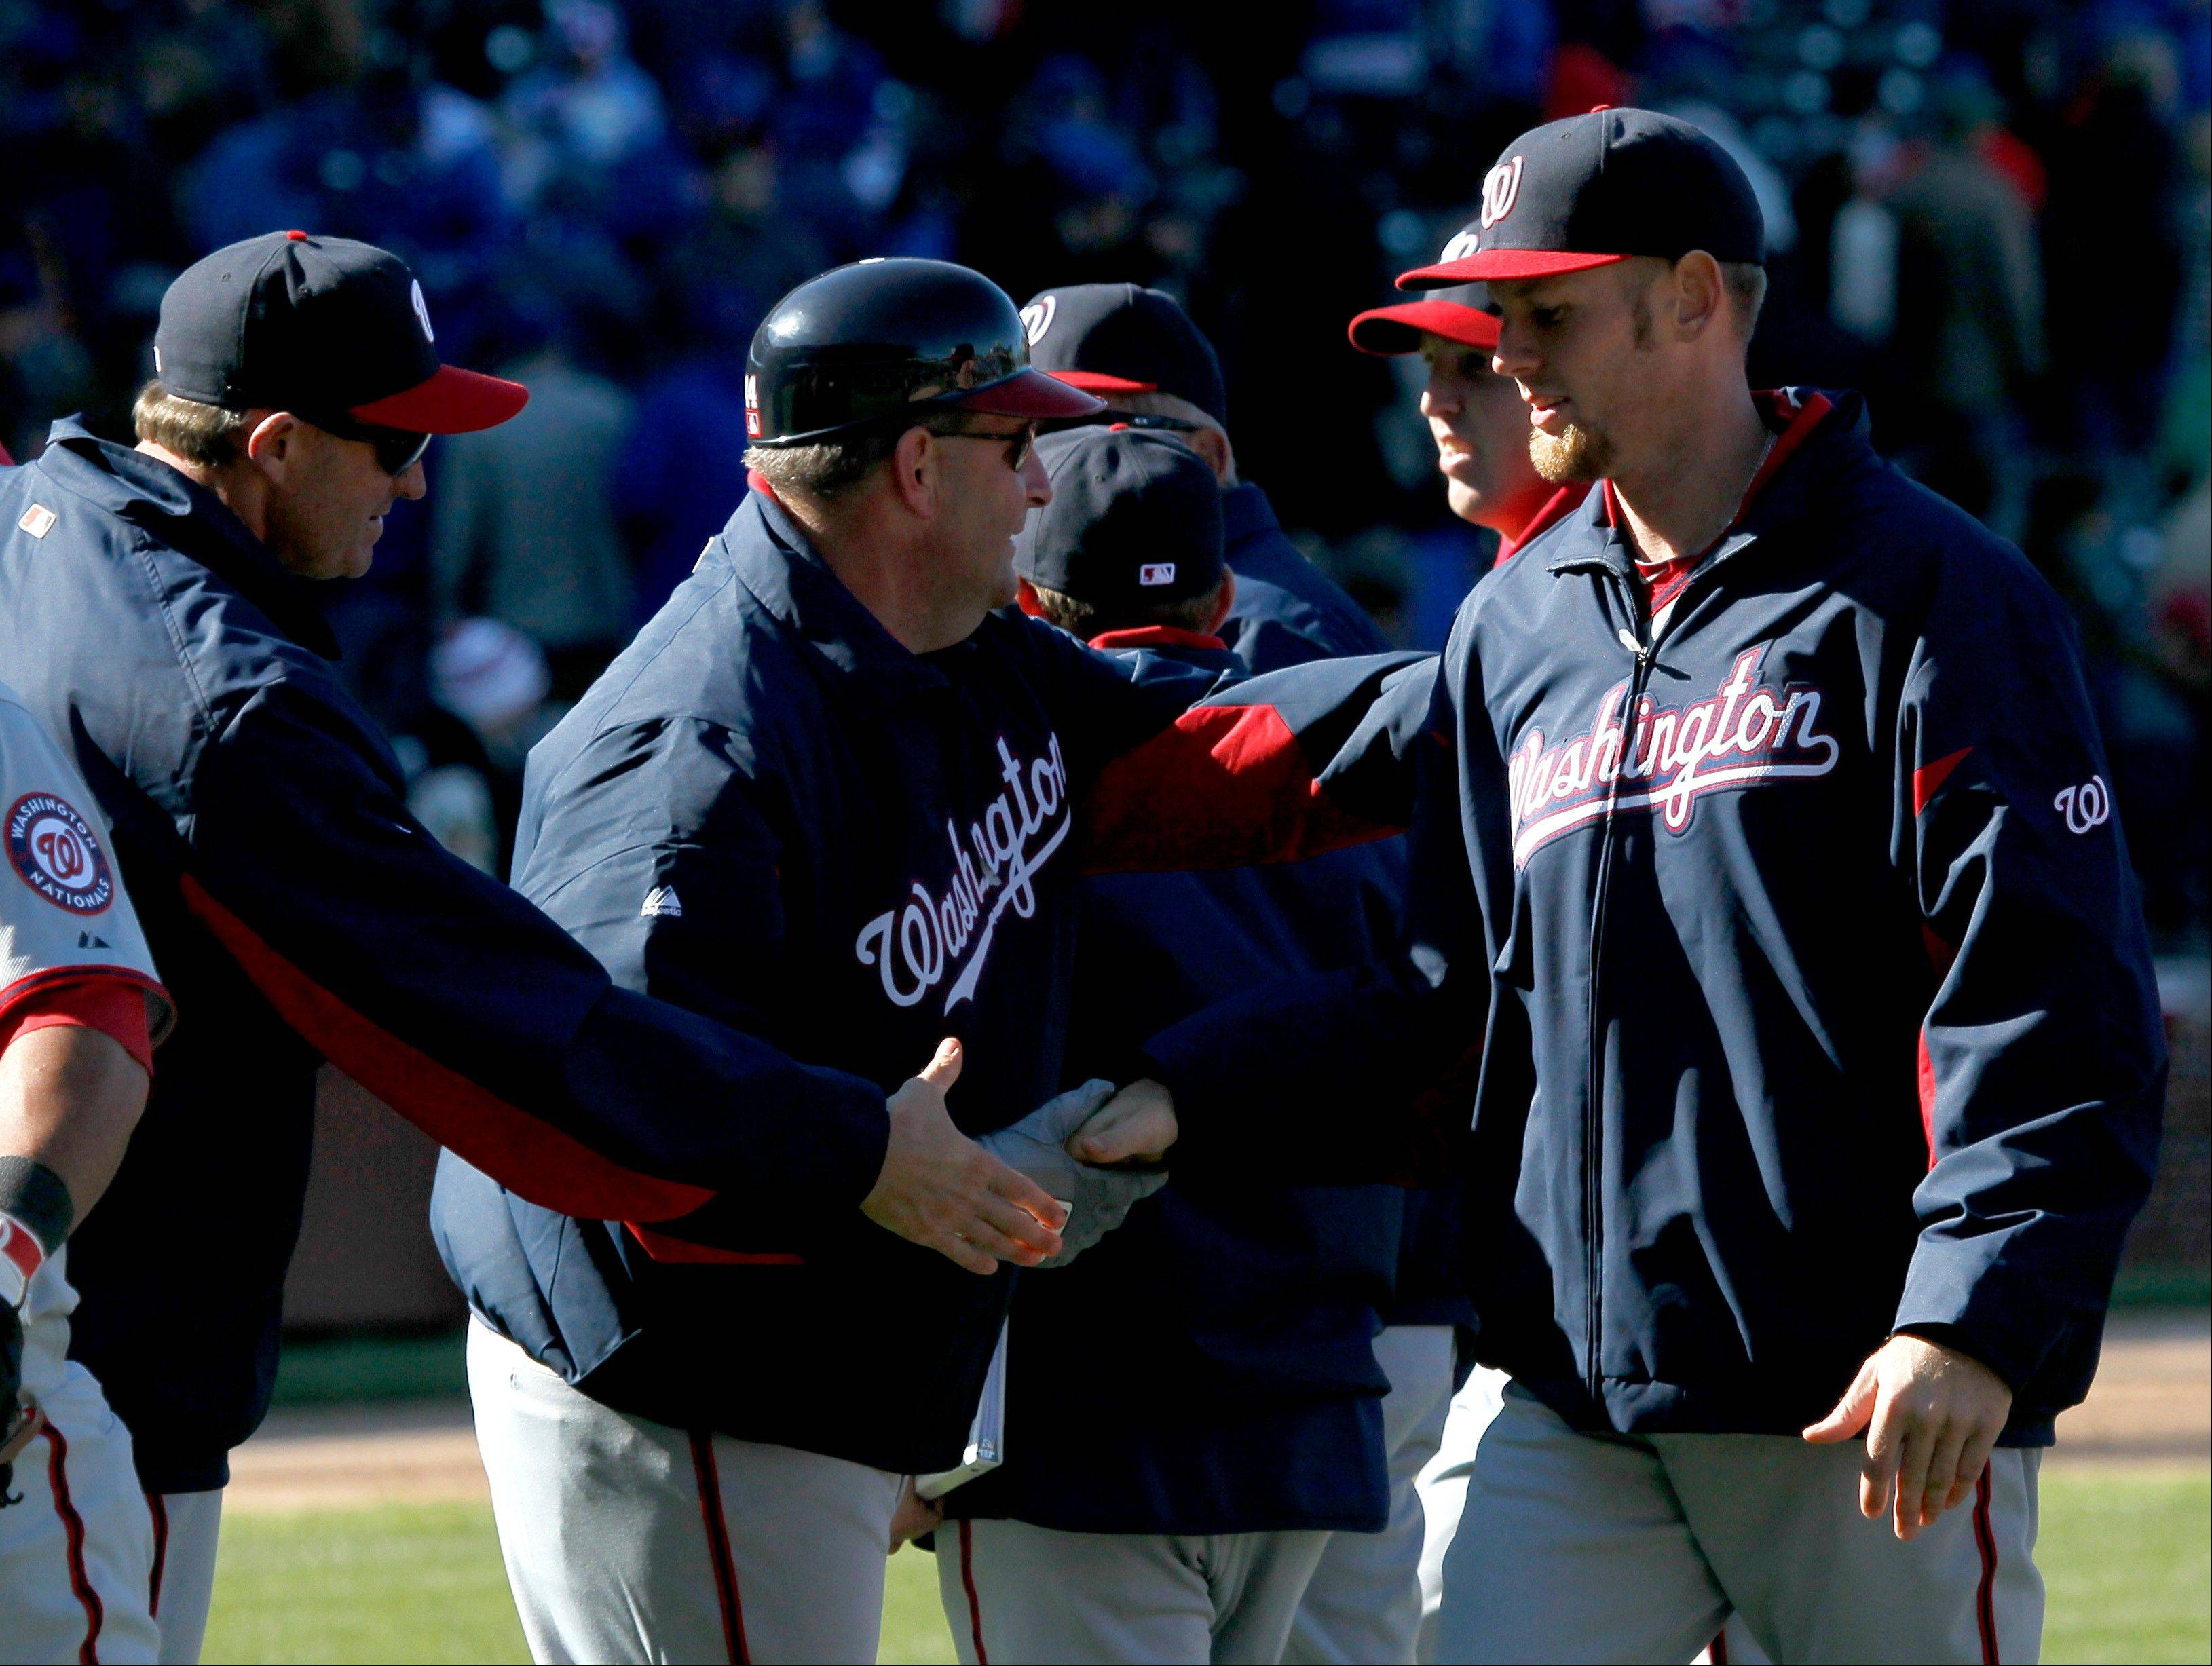 Washington Nationals starting pitcher Stephen Strasburg, right, celebrates with coaches after their 2-1 win in an opening day baseball game against the Chicago Cubs, Thursday, April 5, 2012, in Chicago.